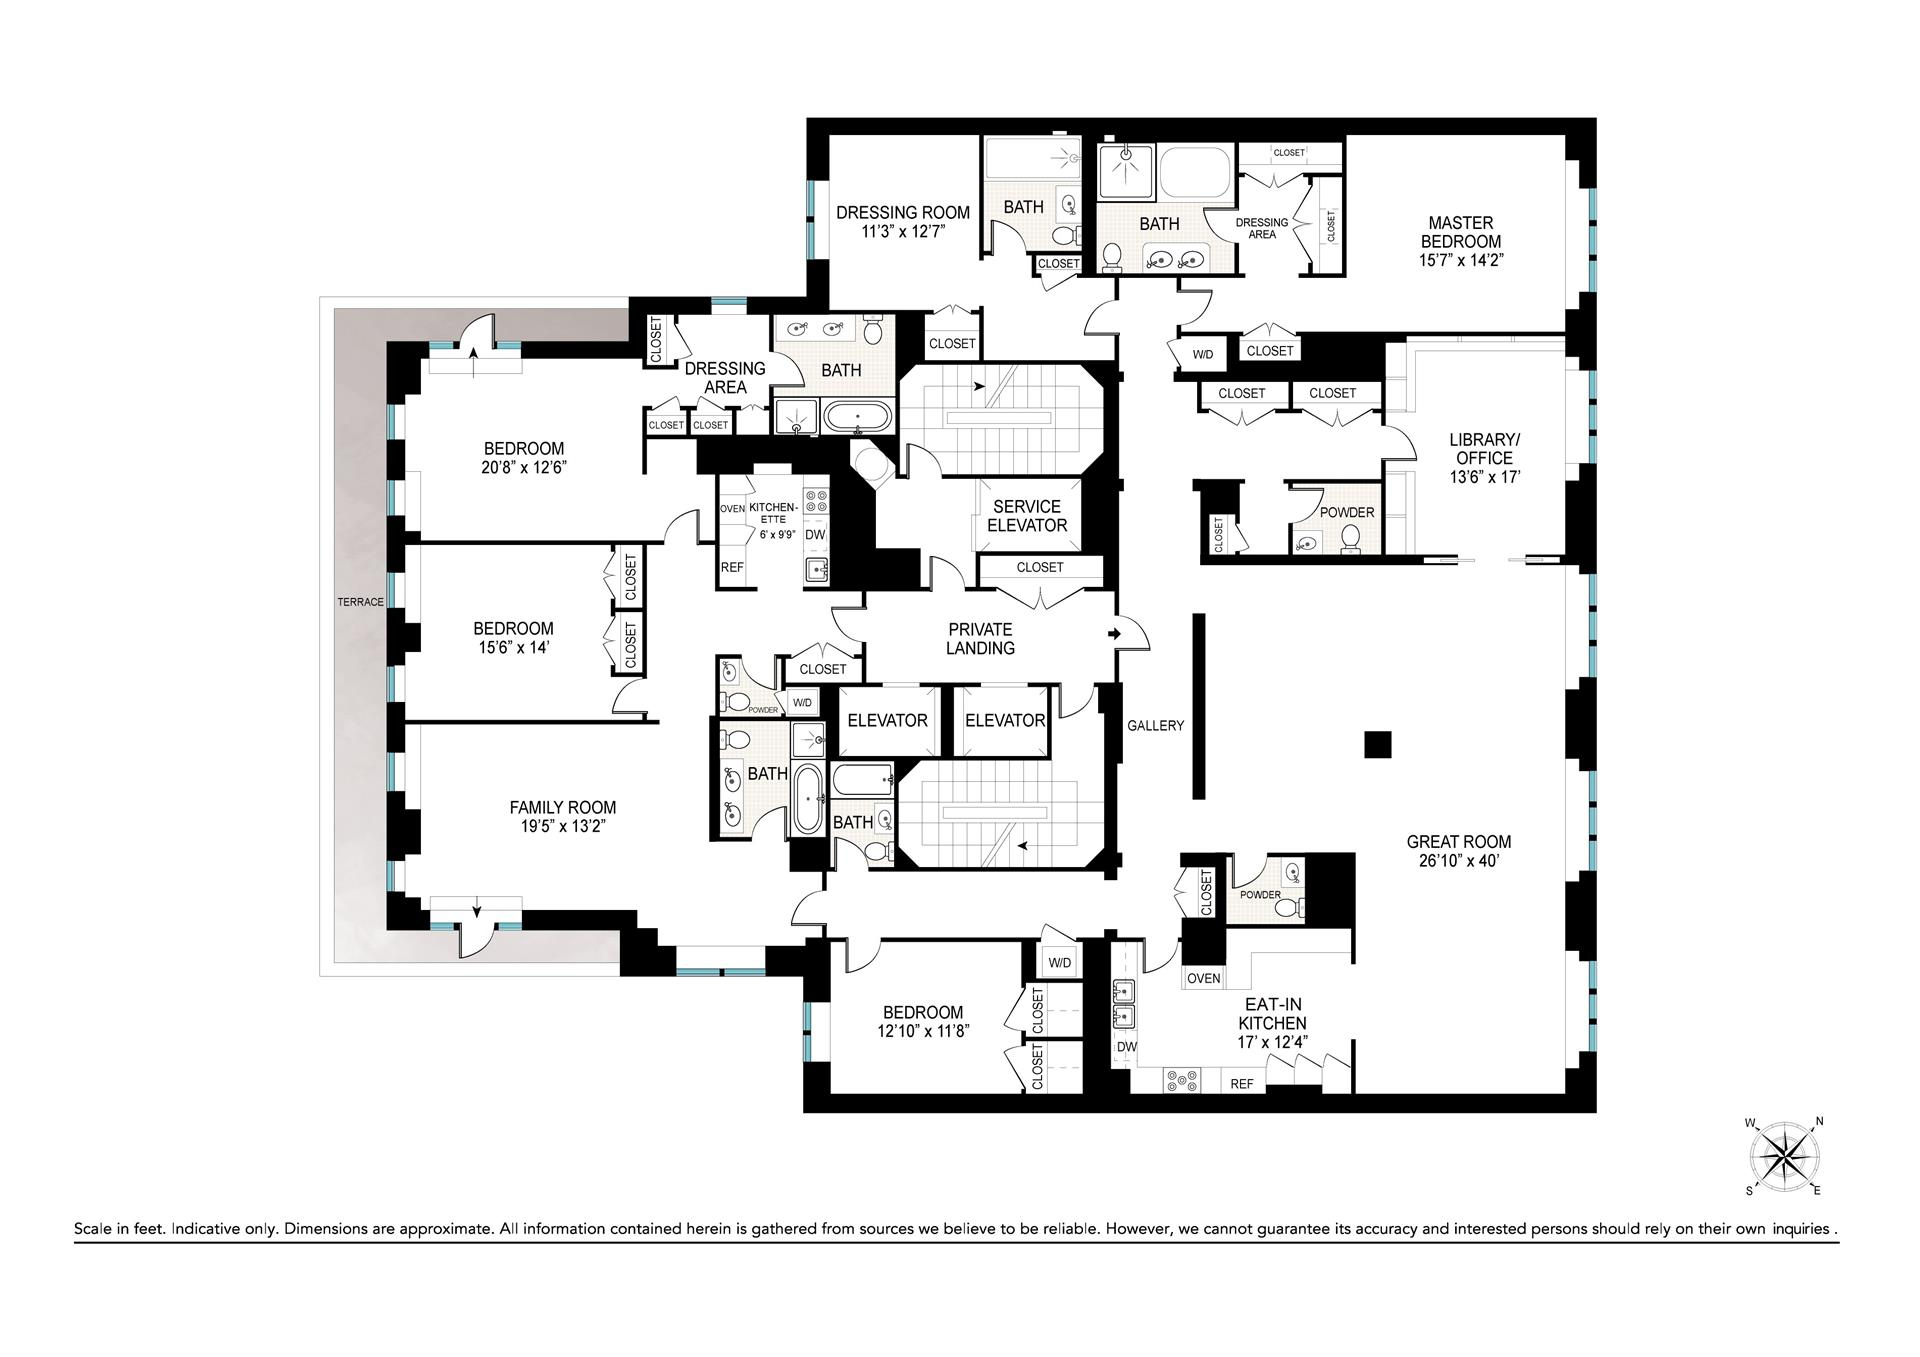 Floor plan of 110 Central Park South, 17ABC - Central Park South, New York